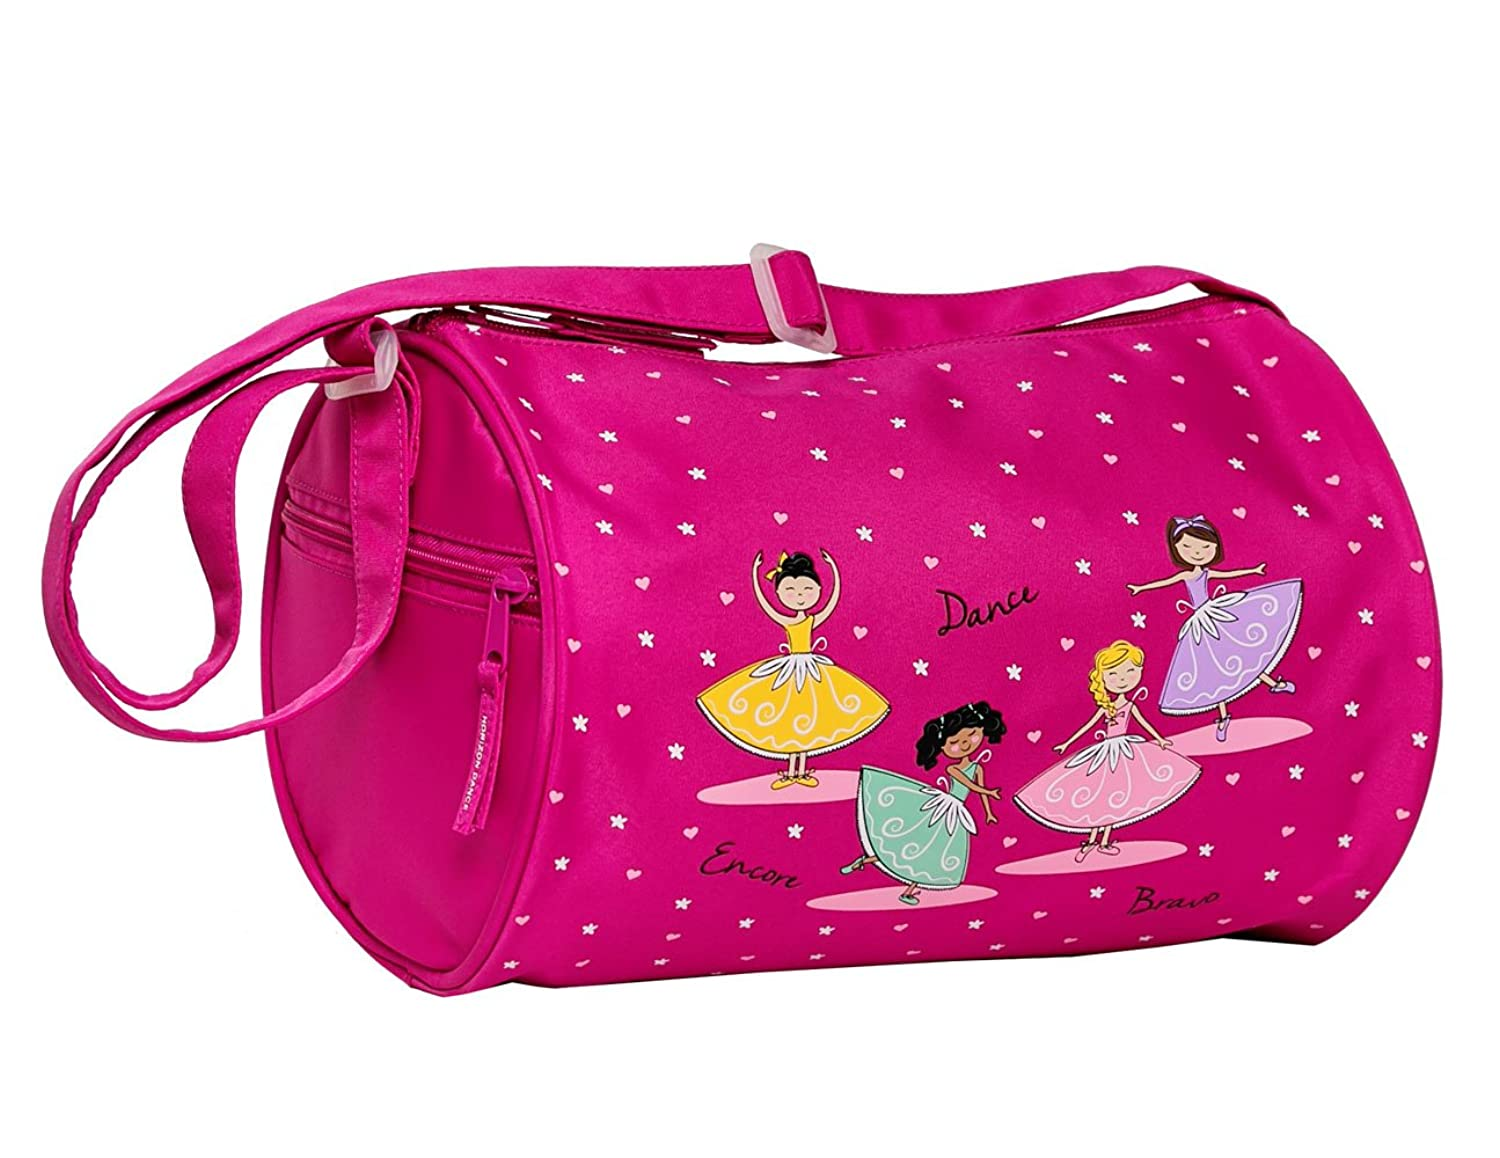 Attractive Amazon.com | Private Label Girl's Quilted Nylon Dance Duffle Bag  QH16